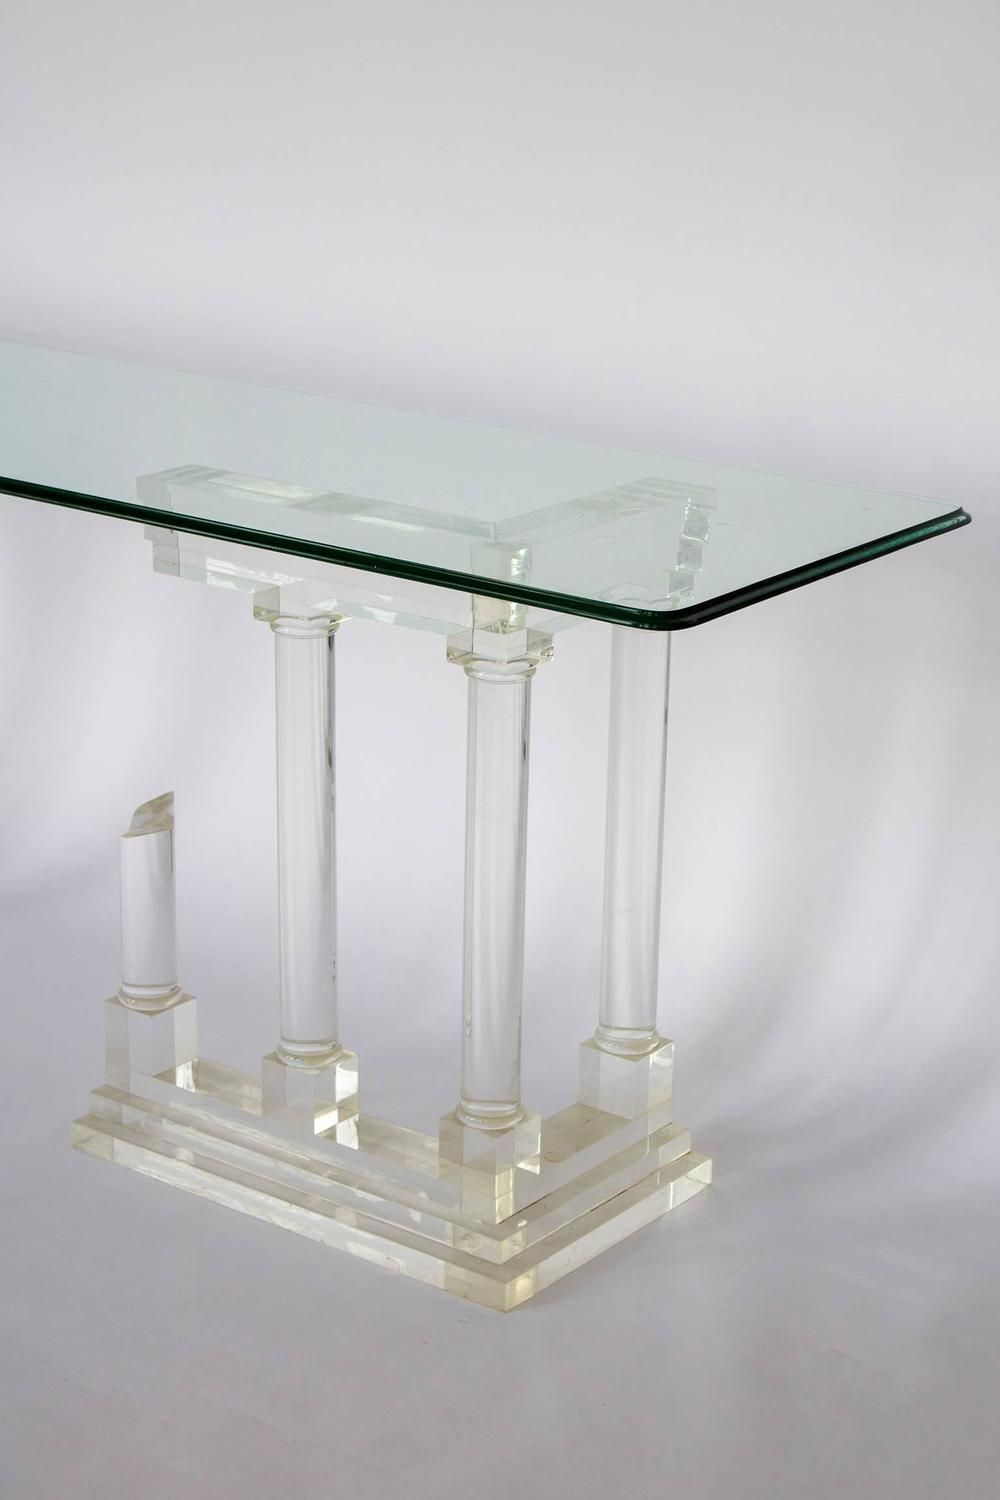 Architectural Pillar Console Table In Perspex Lucite Columns, Mid With Regard To Era Glass Console Tables (View 19 of 30)